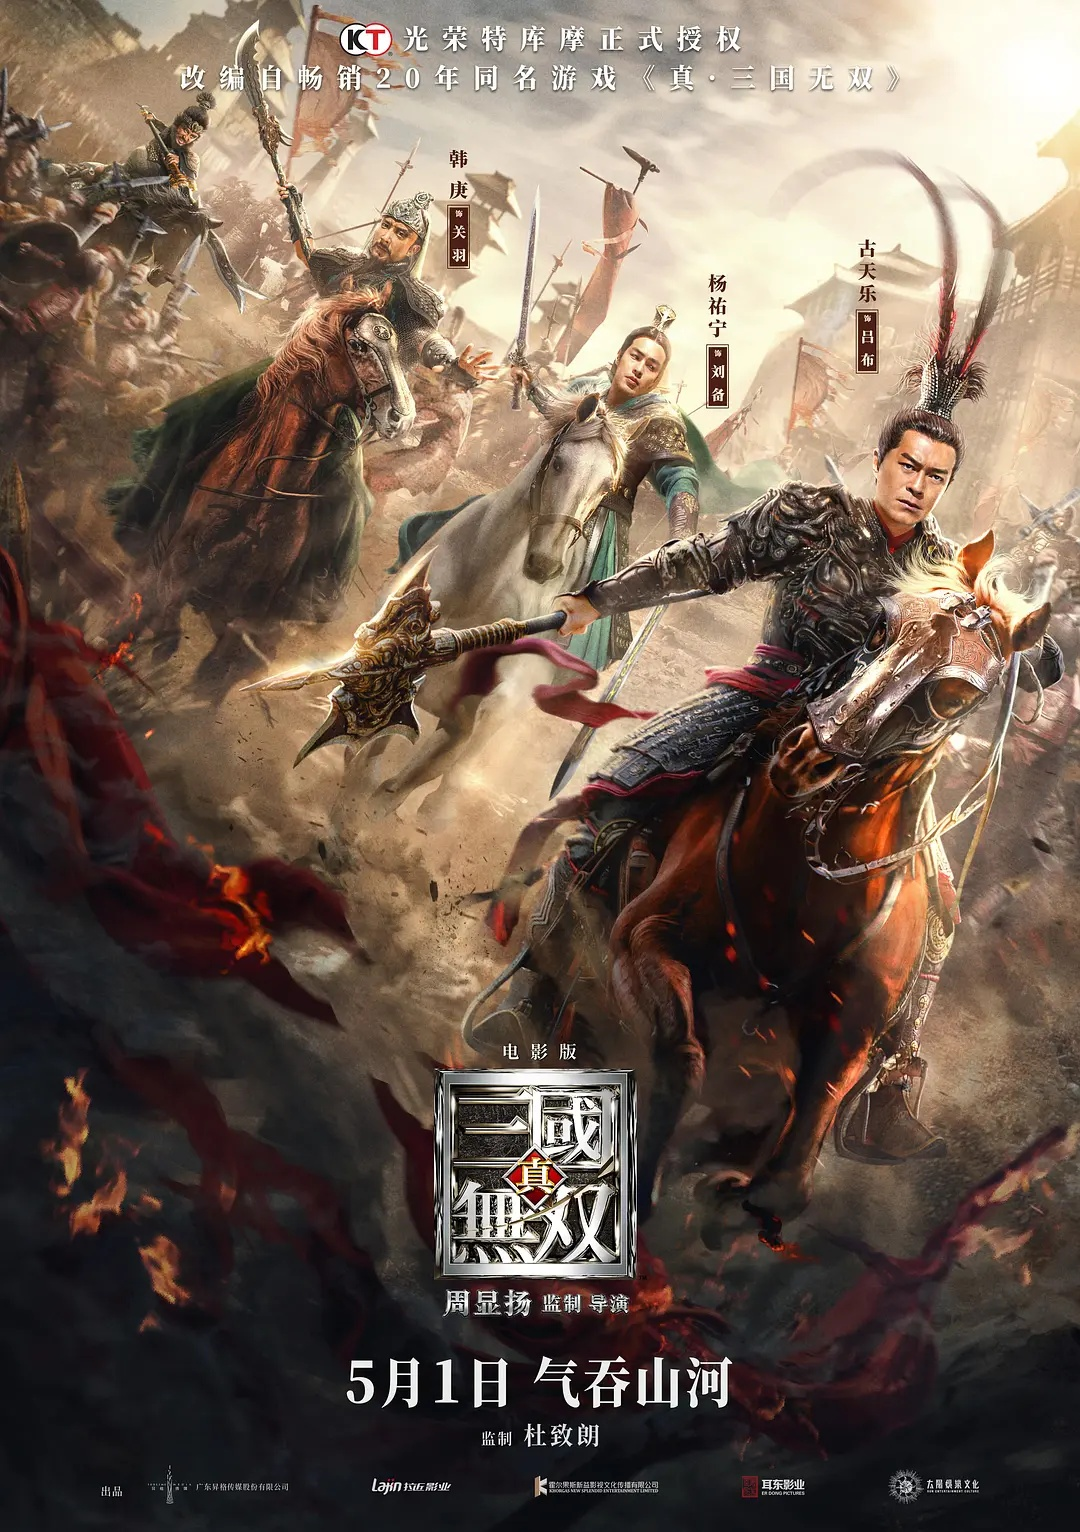 Download Dynasty Warriors: Destiny of an Emperor (2021) Full Movie | Stream Dynasty Warriors: Destiny of an Emperor (2021) Full HD | Watch Dynasty Warriors: Destiny of an Emperor (2021) | Free Download Dynasty Warriors: Destiny of an Emperor (2021) Full Movie